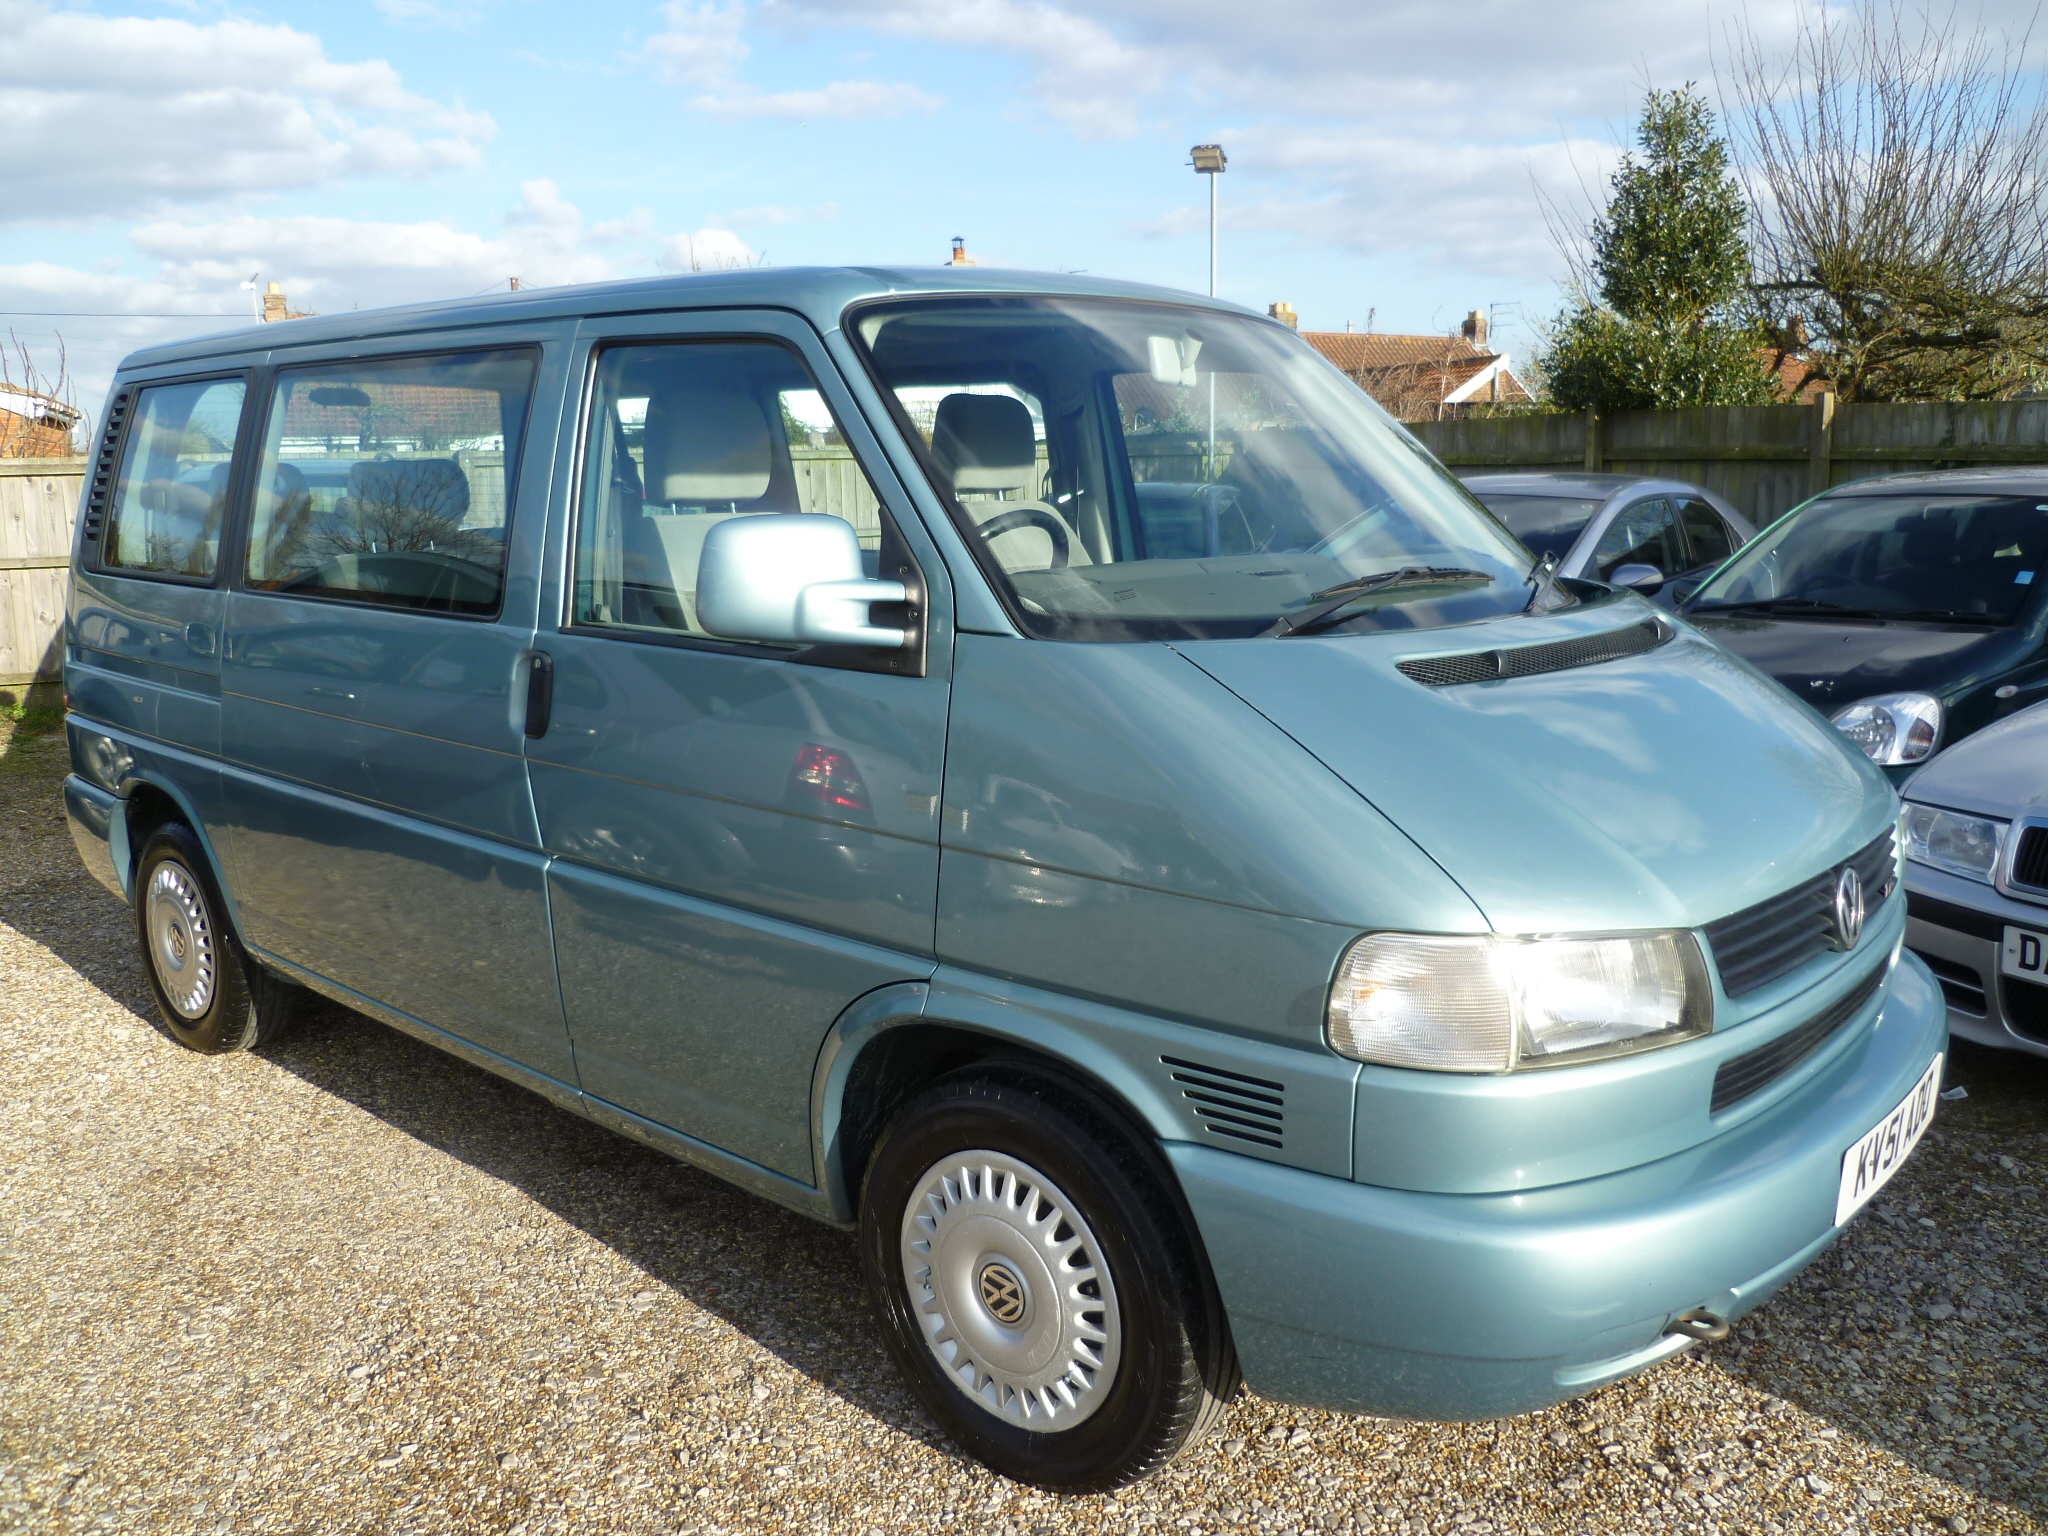 VW Caravelle 2.5TDI Automatic 020